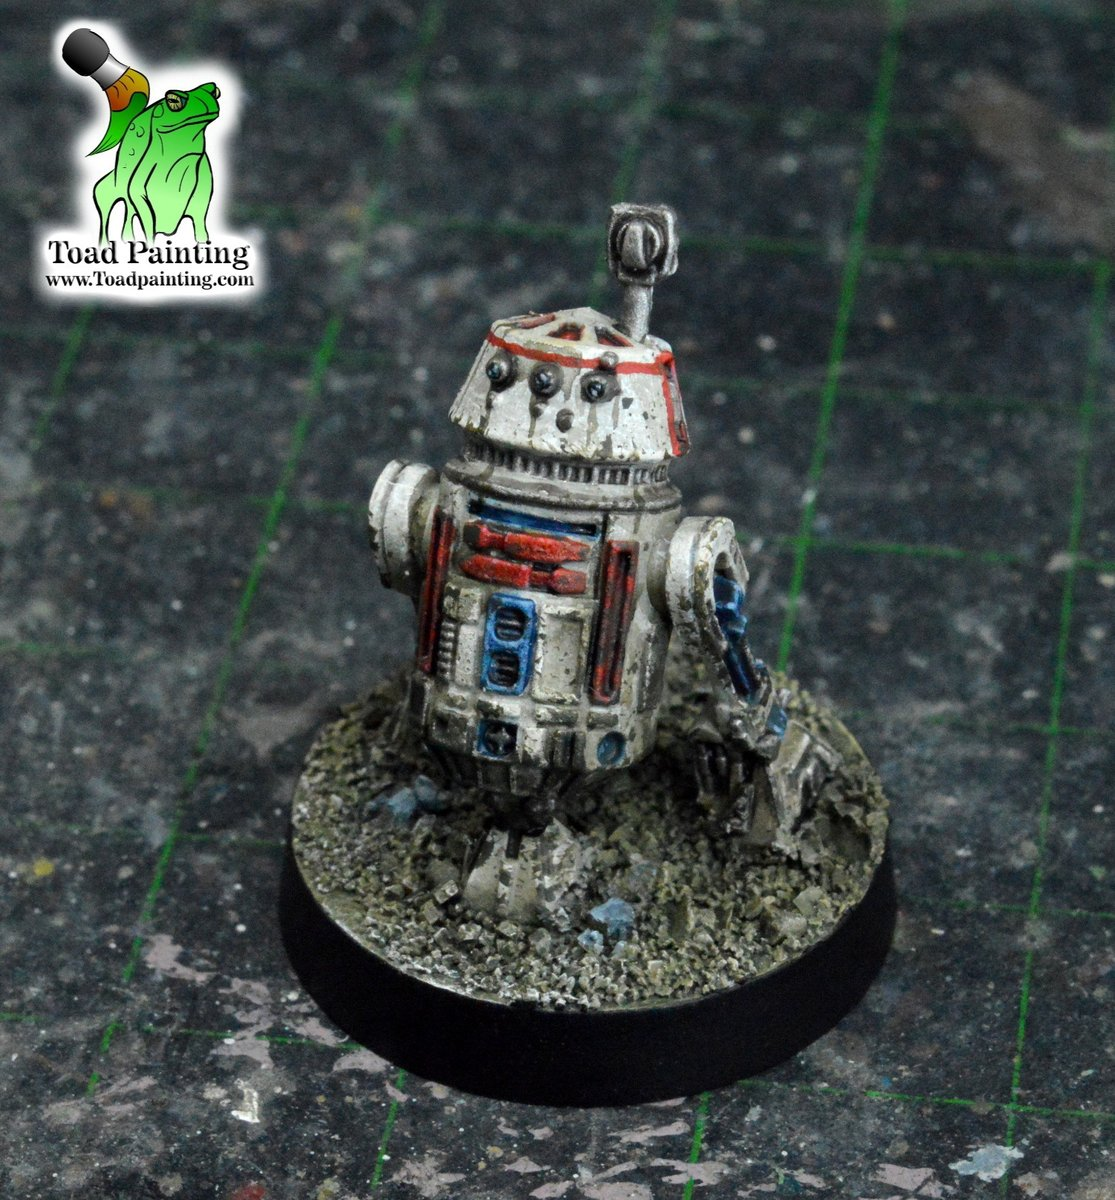 This little guy needs a wash. Playing around with dirt on this R5-D4 from #starwarslegion by @FFGames    #minipainting #miniaturepainting #miniatures #StarWars #droid https://t.co/YMShyQVsdd